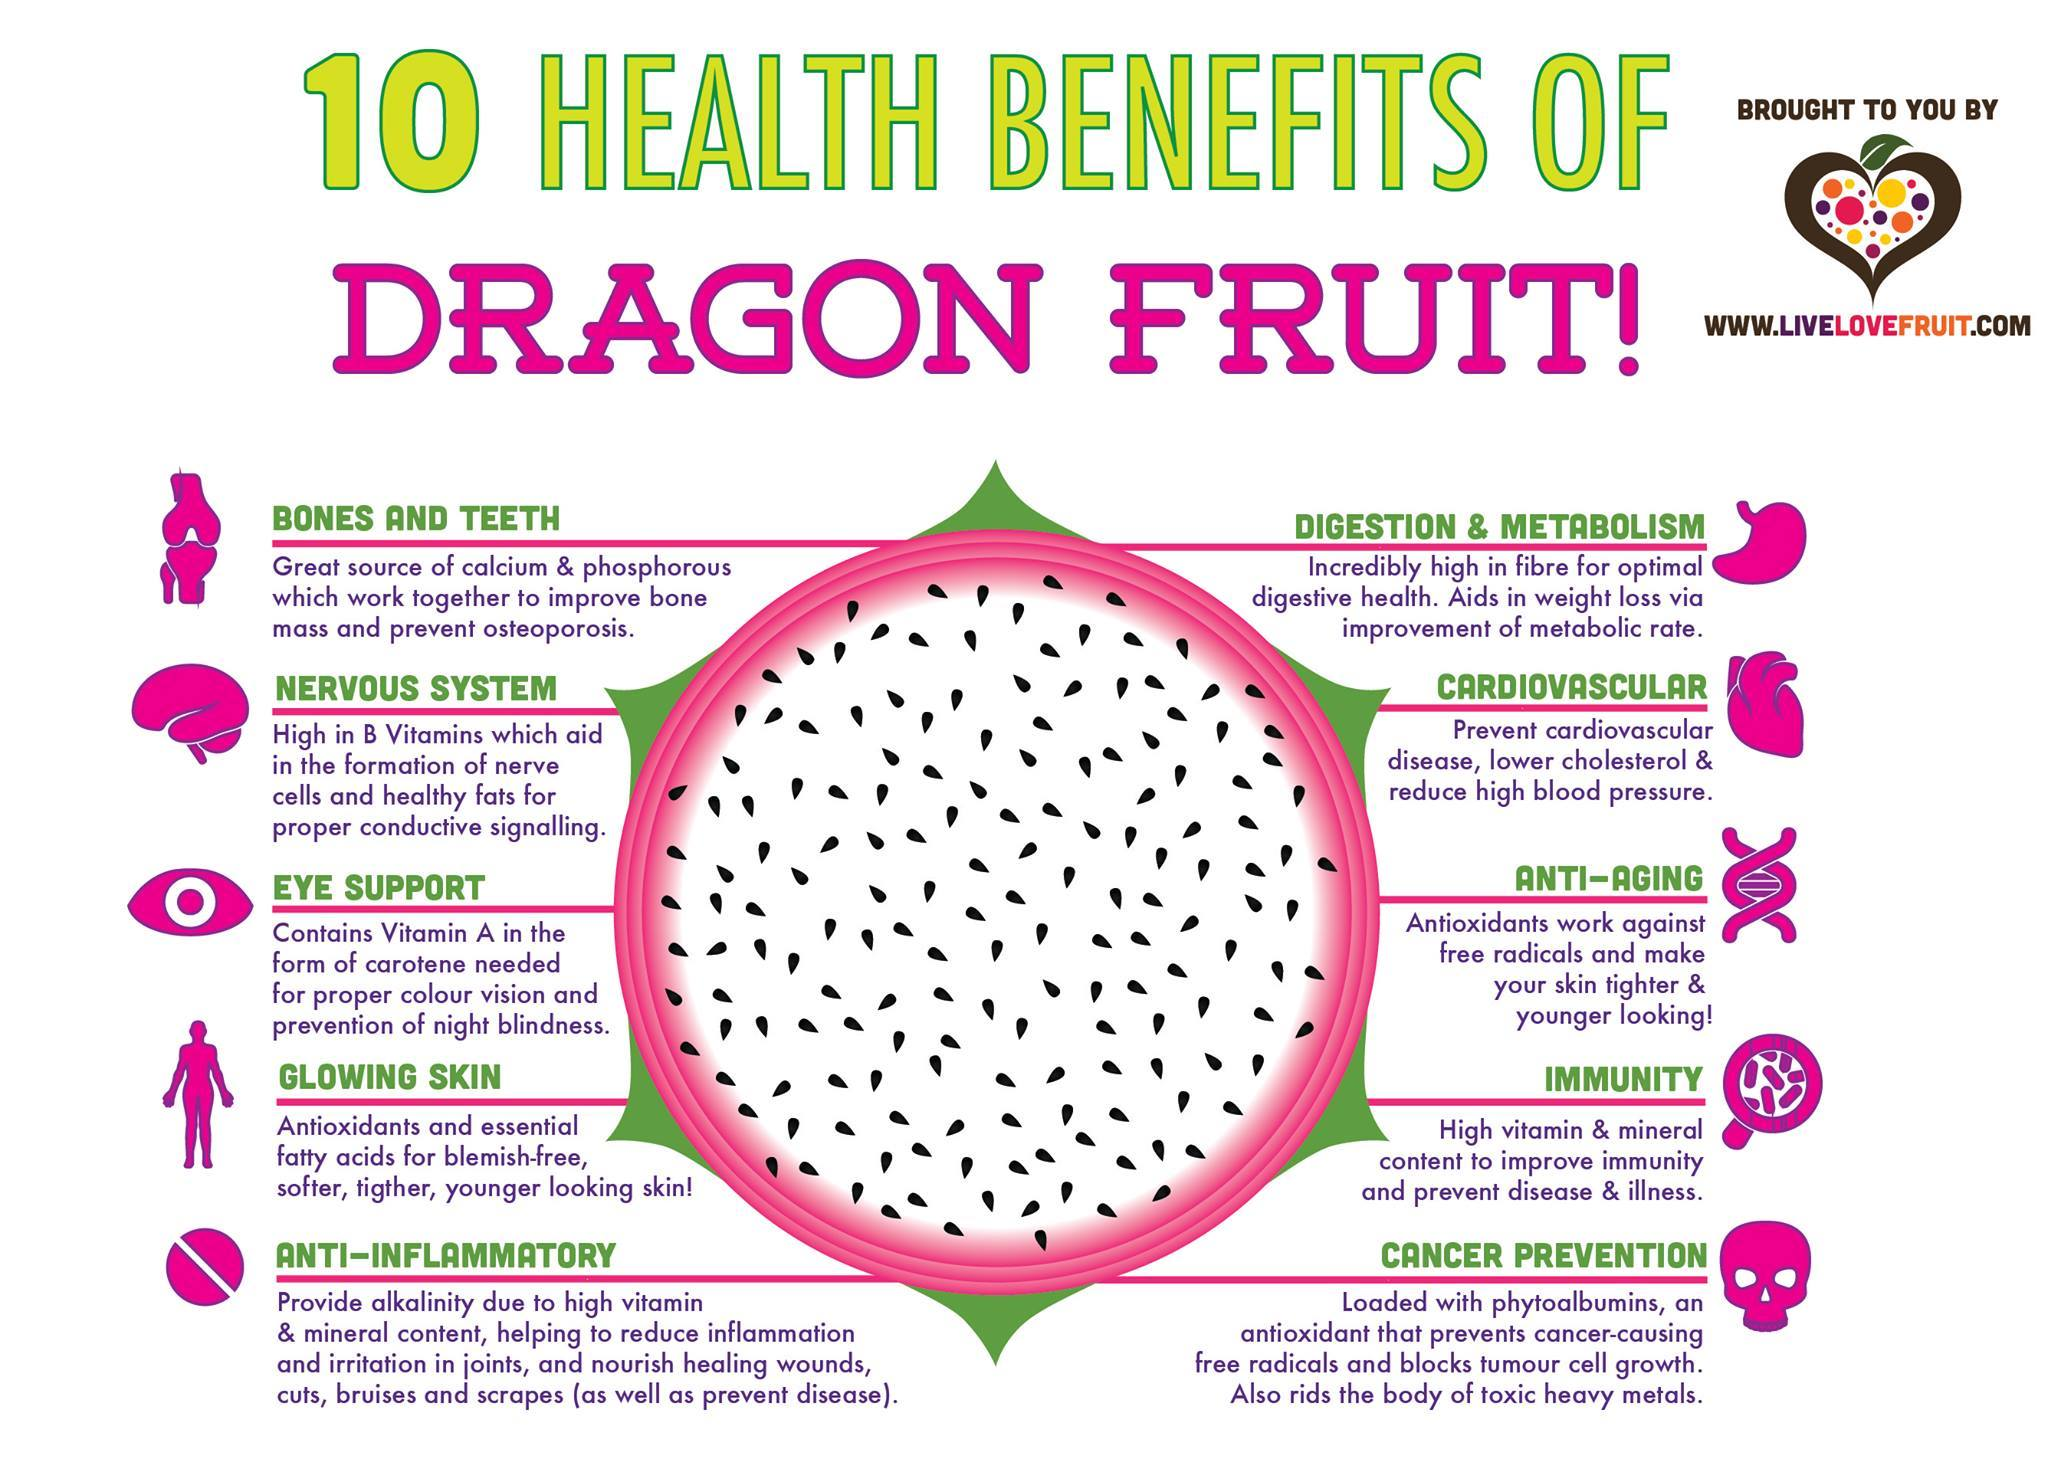 Here Are 10 Ways In Which Dragon Fruit Can Start Improving Your Health  Today!